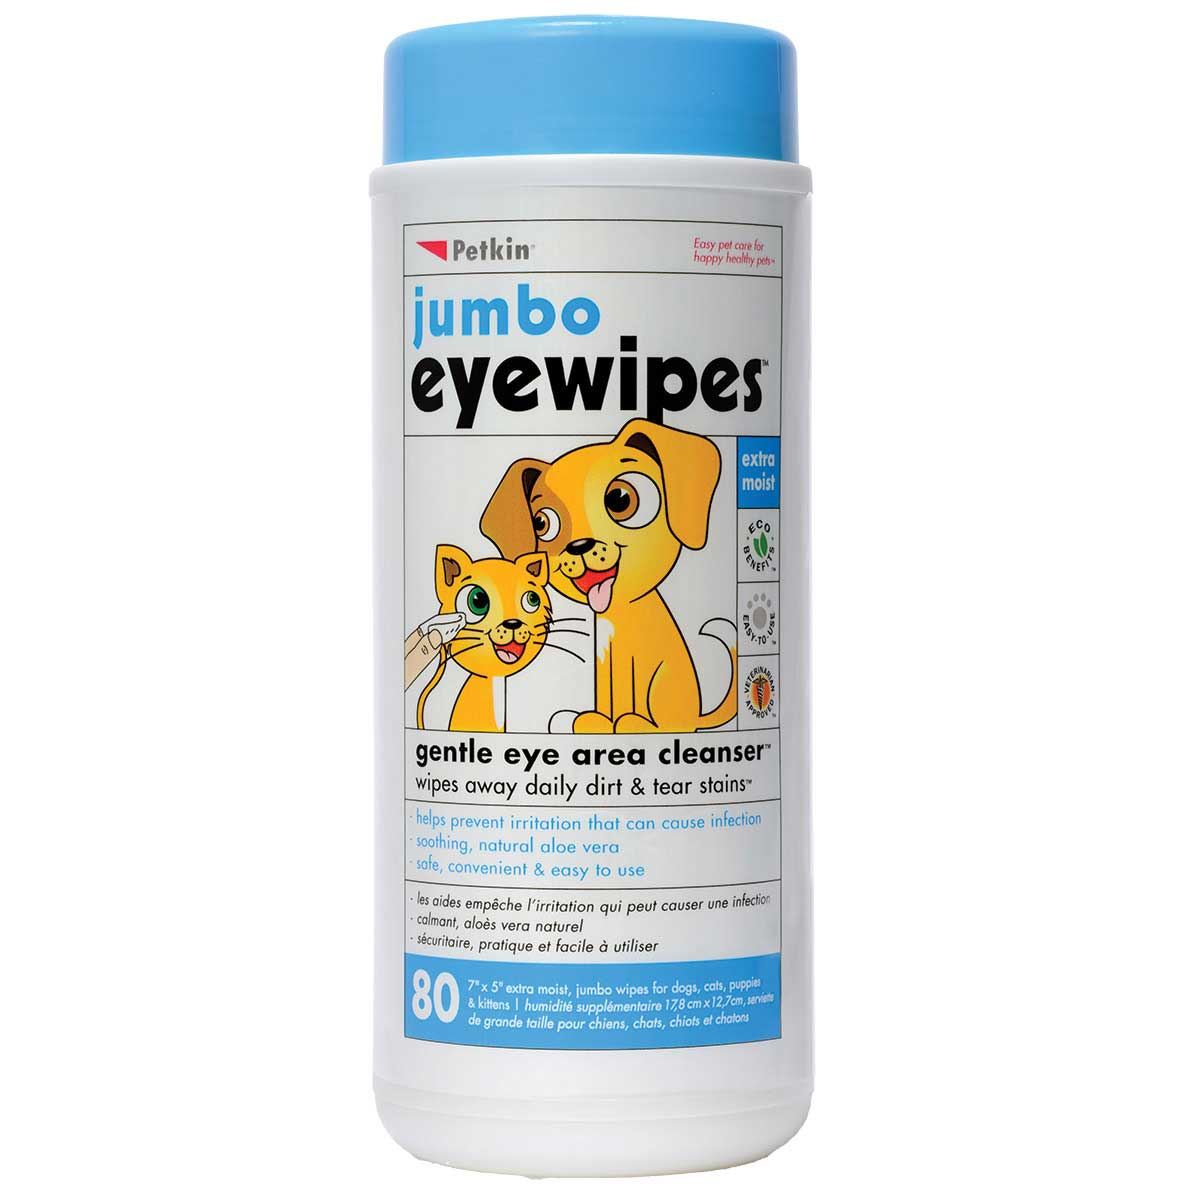 Petkin Jumbo Eye Wipes 80 Count